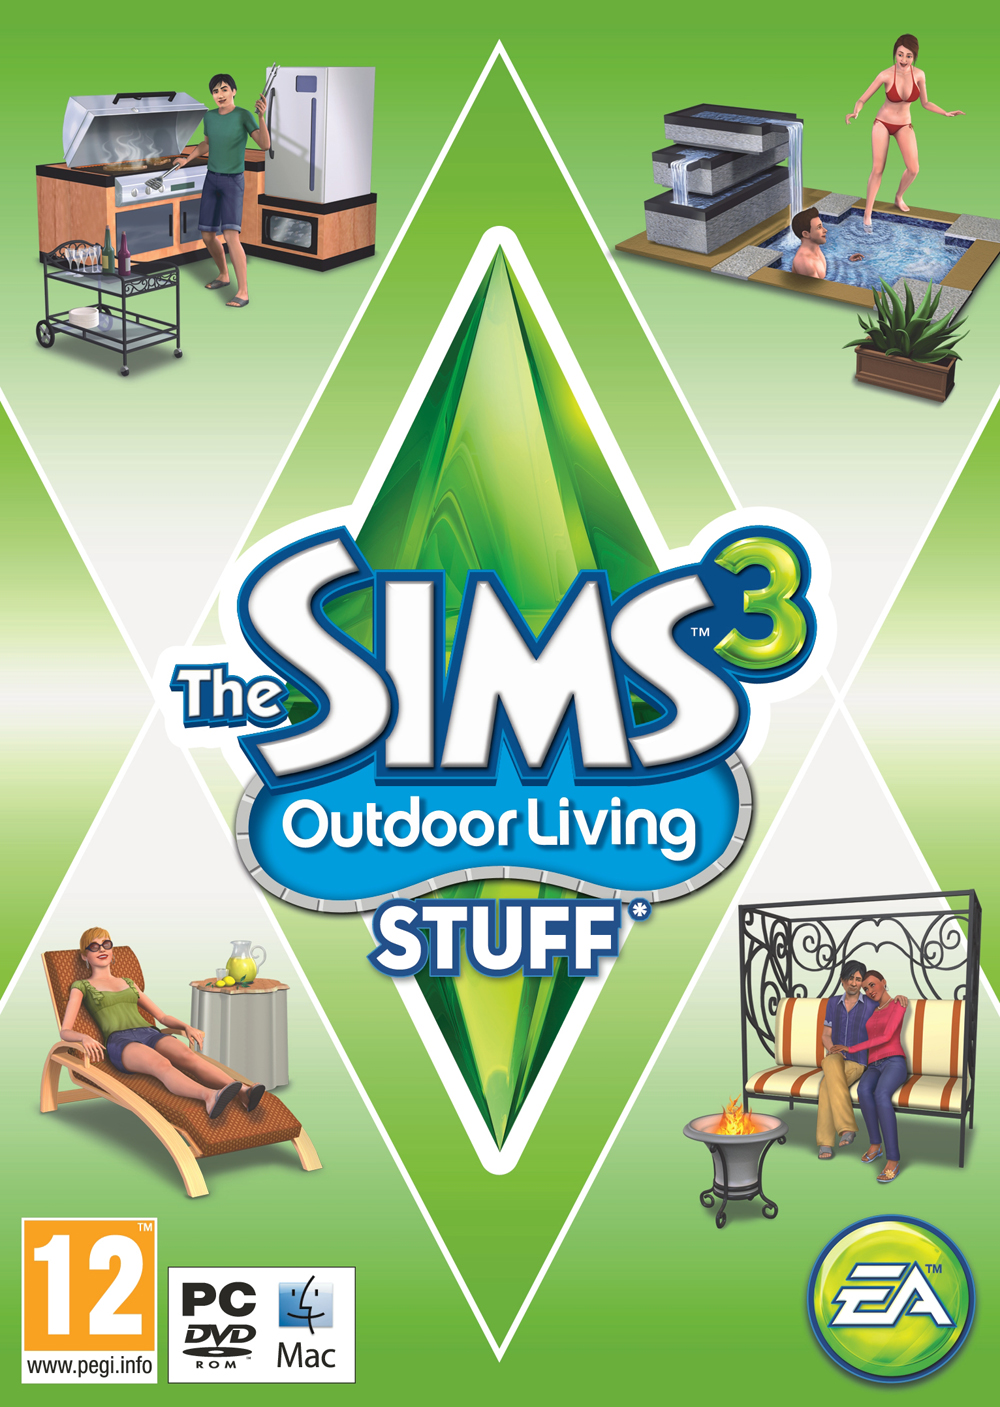 The sims 3 design the sims 3 outdoor living stuff for Sims 4 exterior design